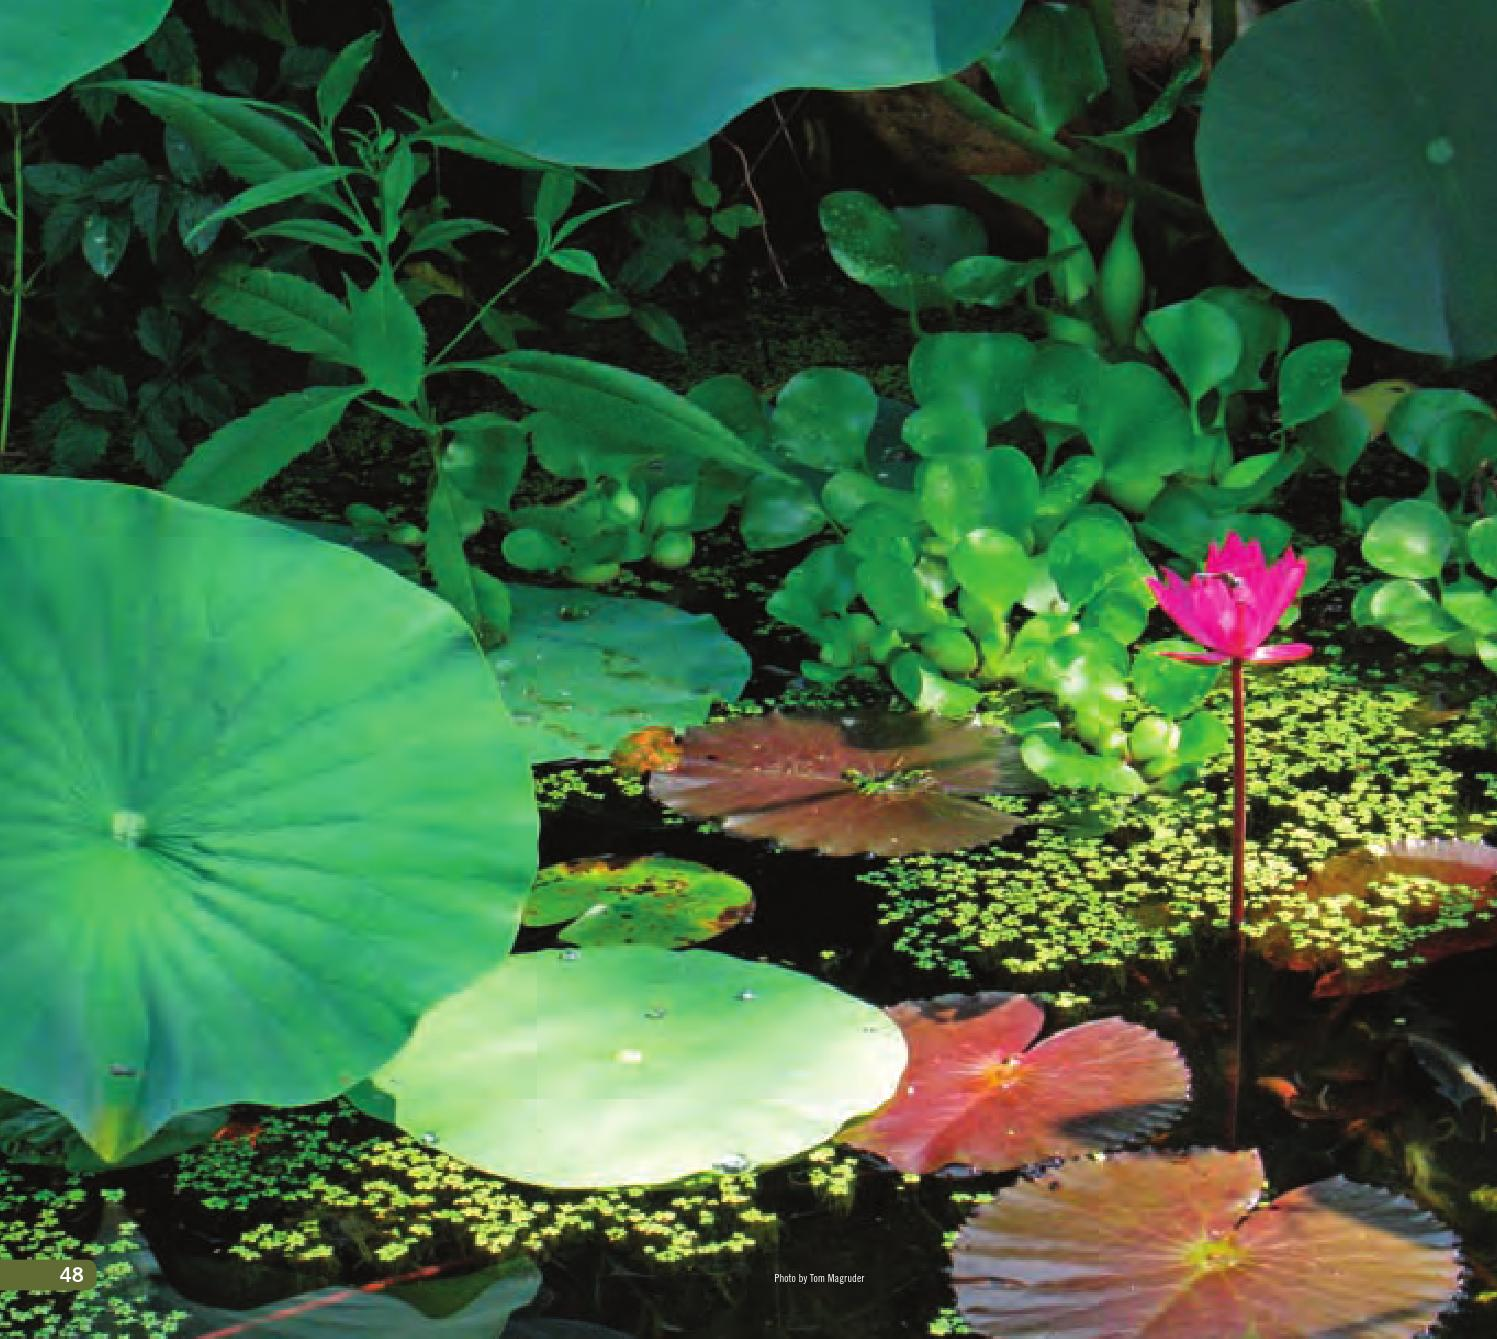 Chapter 3 - The abc's of aquatic plants